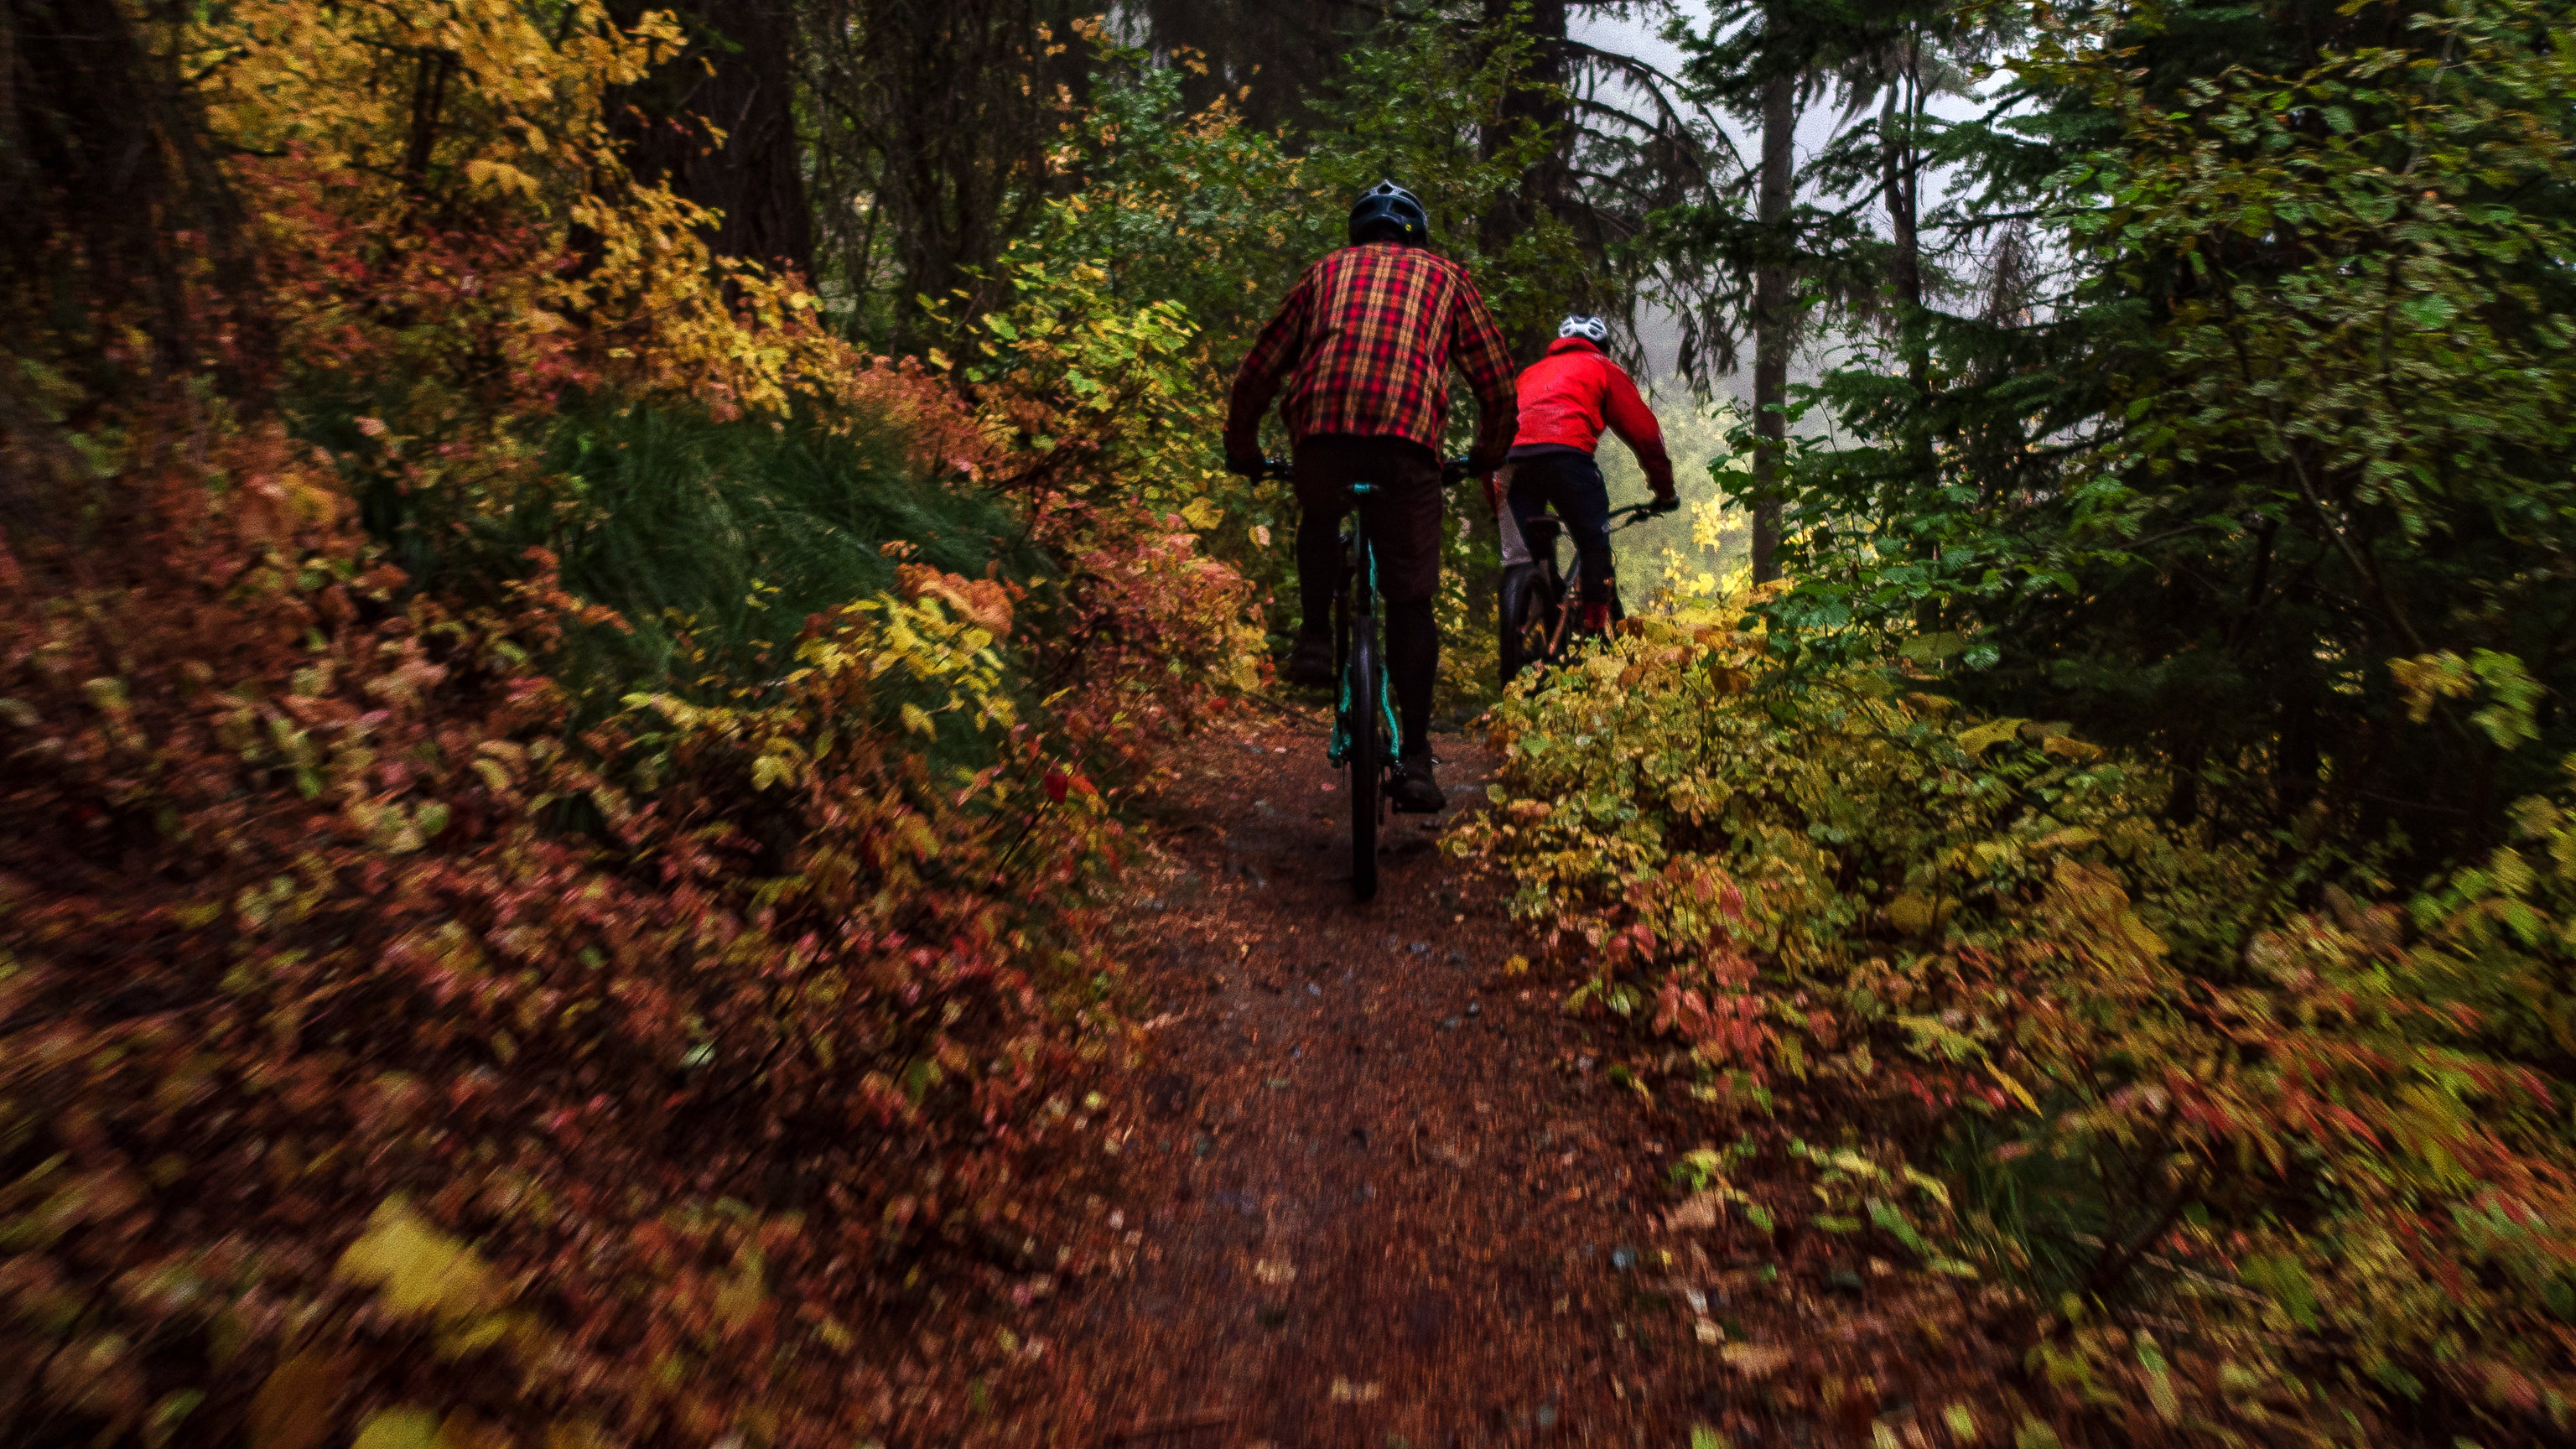 Two mountain  bikers in cool-weather clothing ride away from the camera on a single track forest trail, surrounded by fall-colored brush.